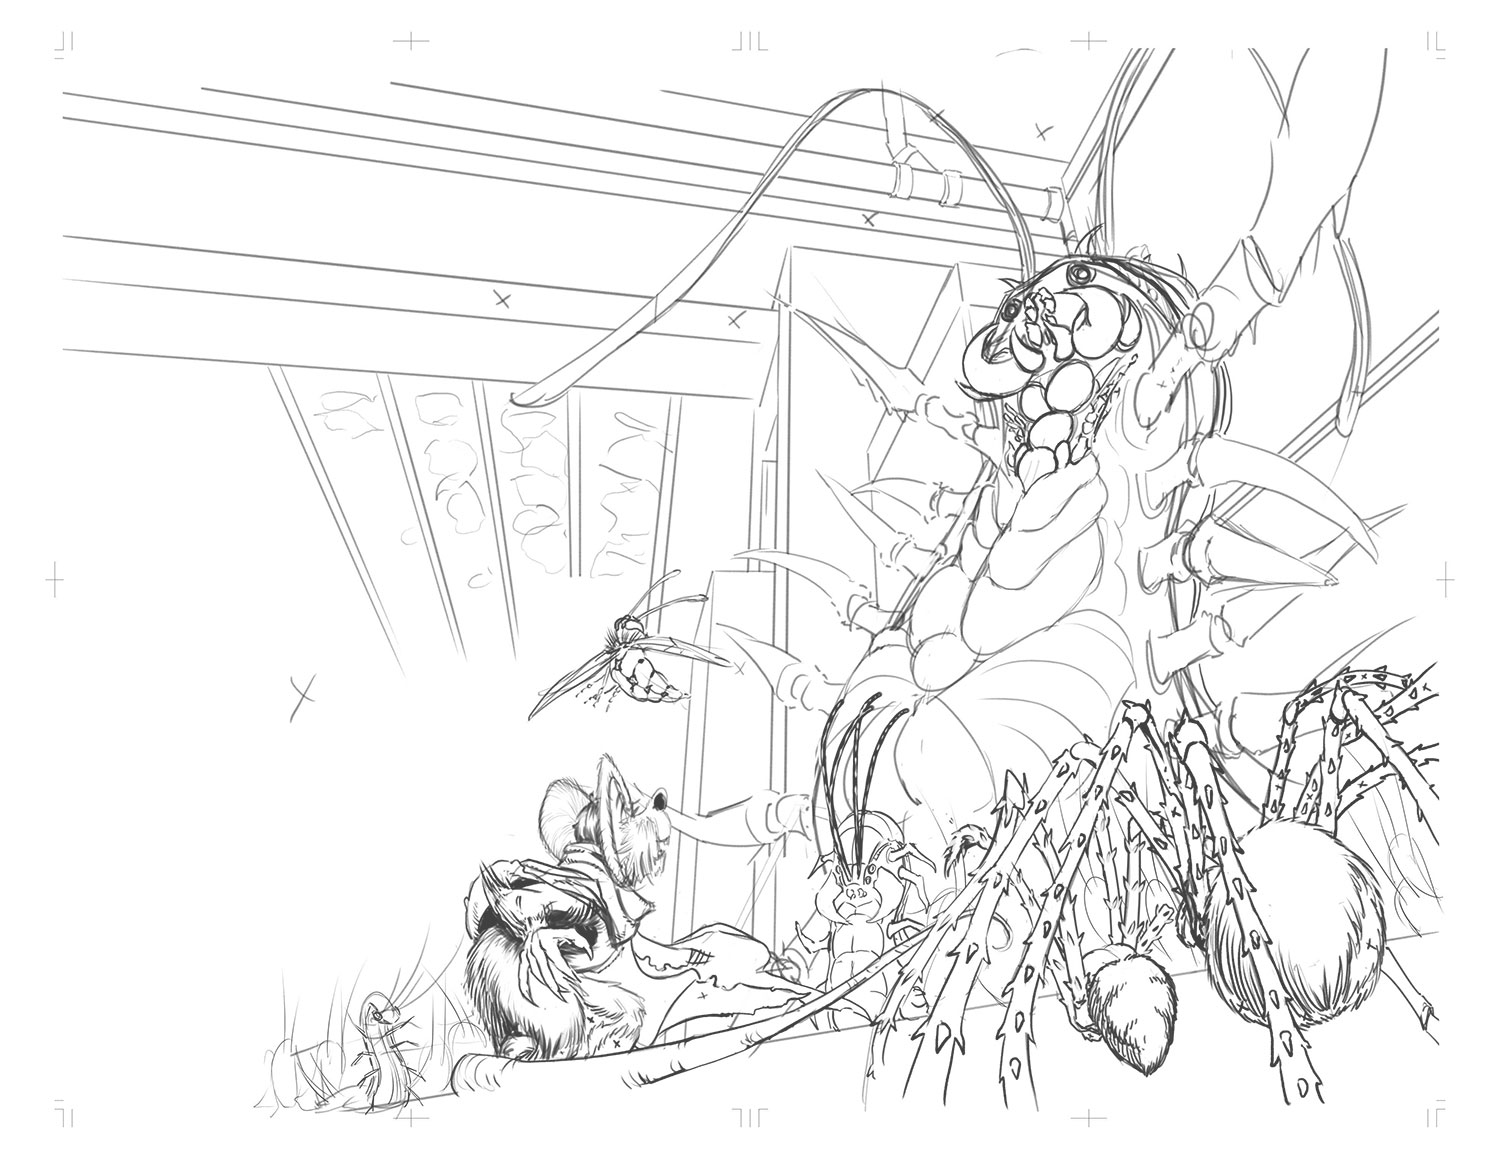 Here's the final spread as digital pencils. Details have been added in for all the hero characters. Some changes were made with the spiders and centipedes. Some background centipedes were also added in to populate the scene.From here it is converted to bluelines and printed to be traditionally inked.